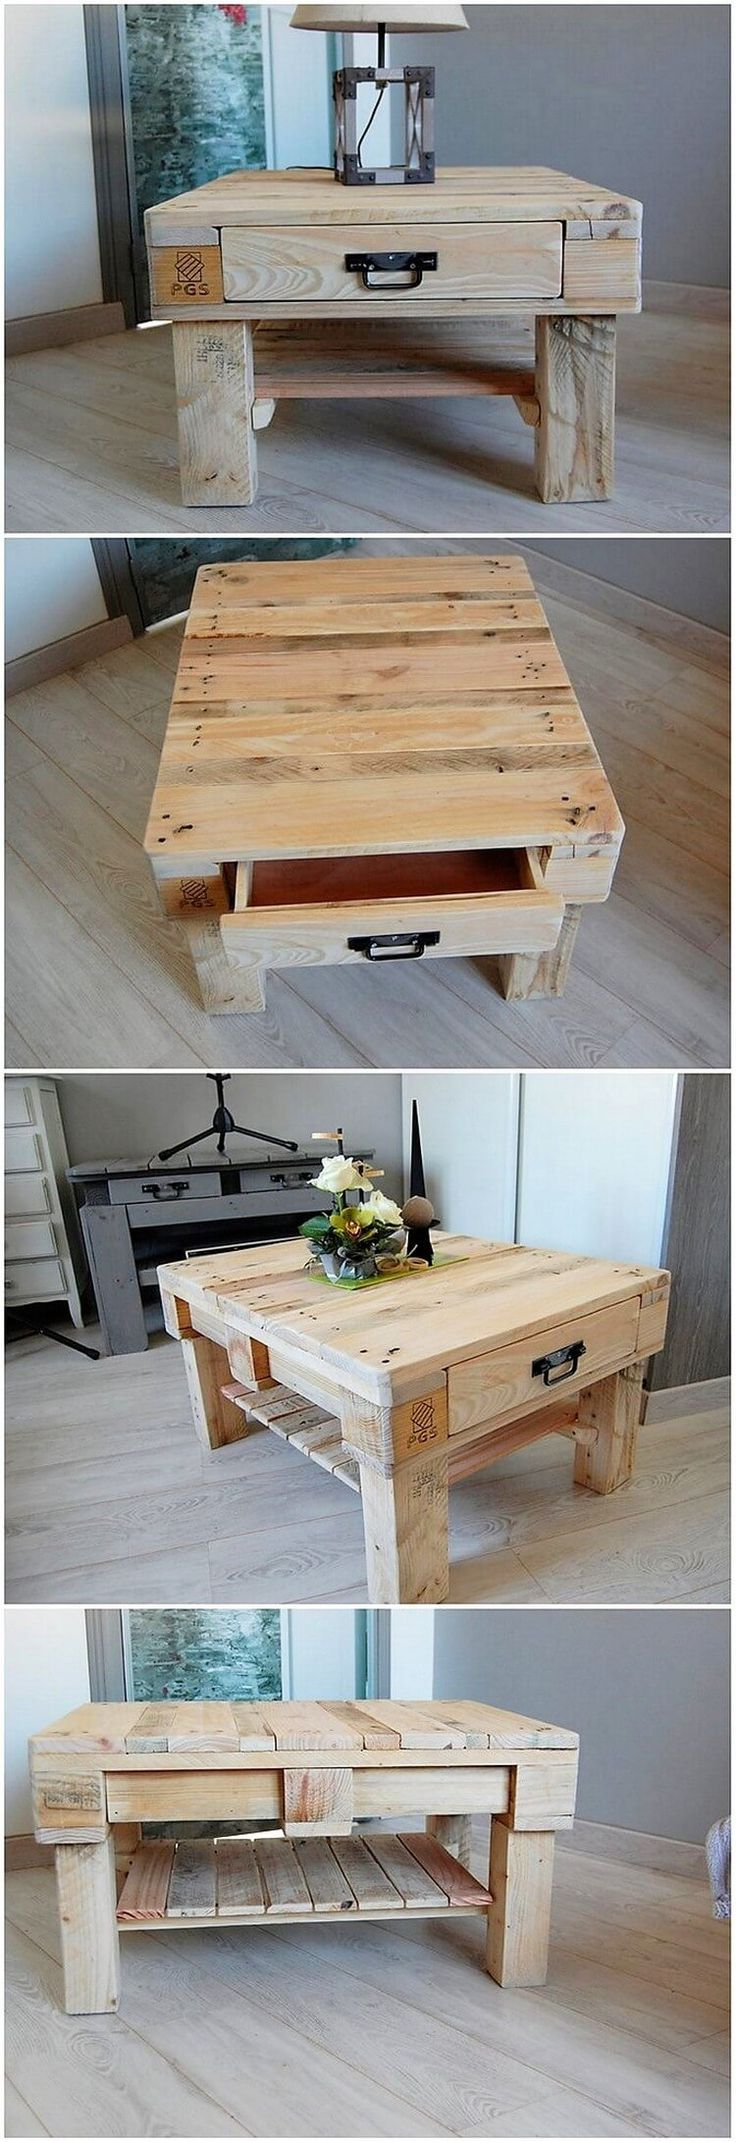 This is another one of the attractive designed wood pallet table for your home use. This pallet designing is usually meant for the locations of the lounge areas that are much lively and colorful looking. You can purposely make it find add with the storage drawer.